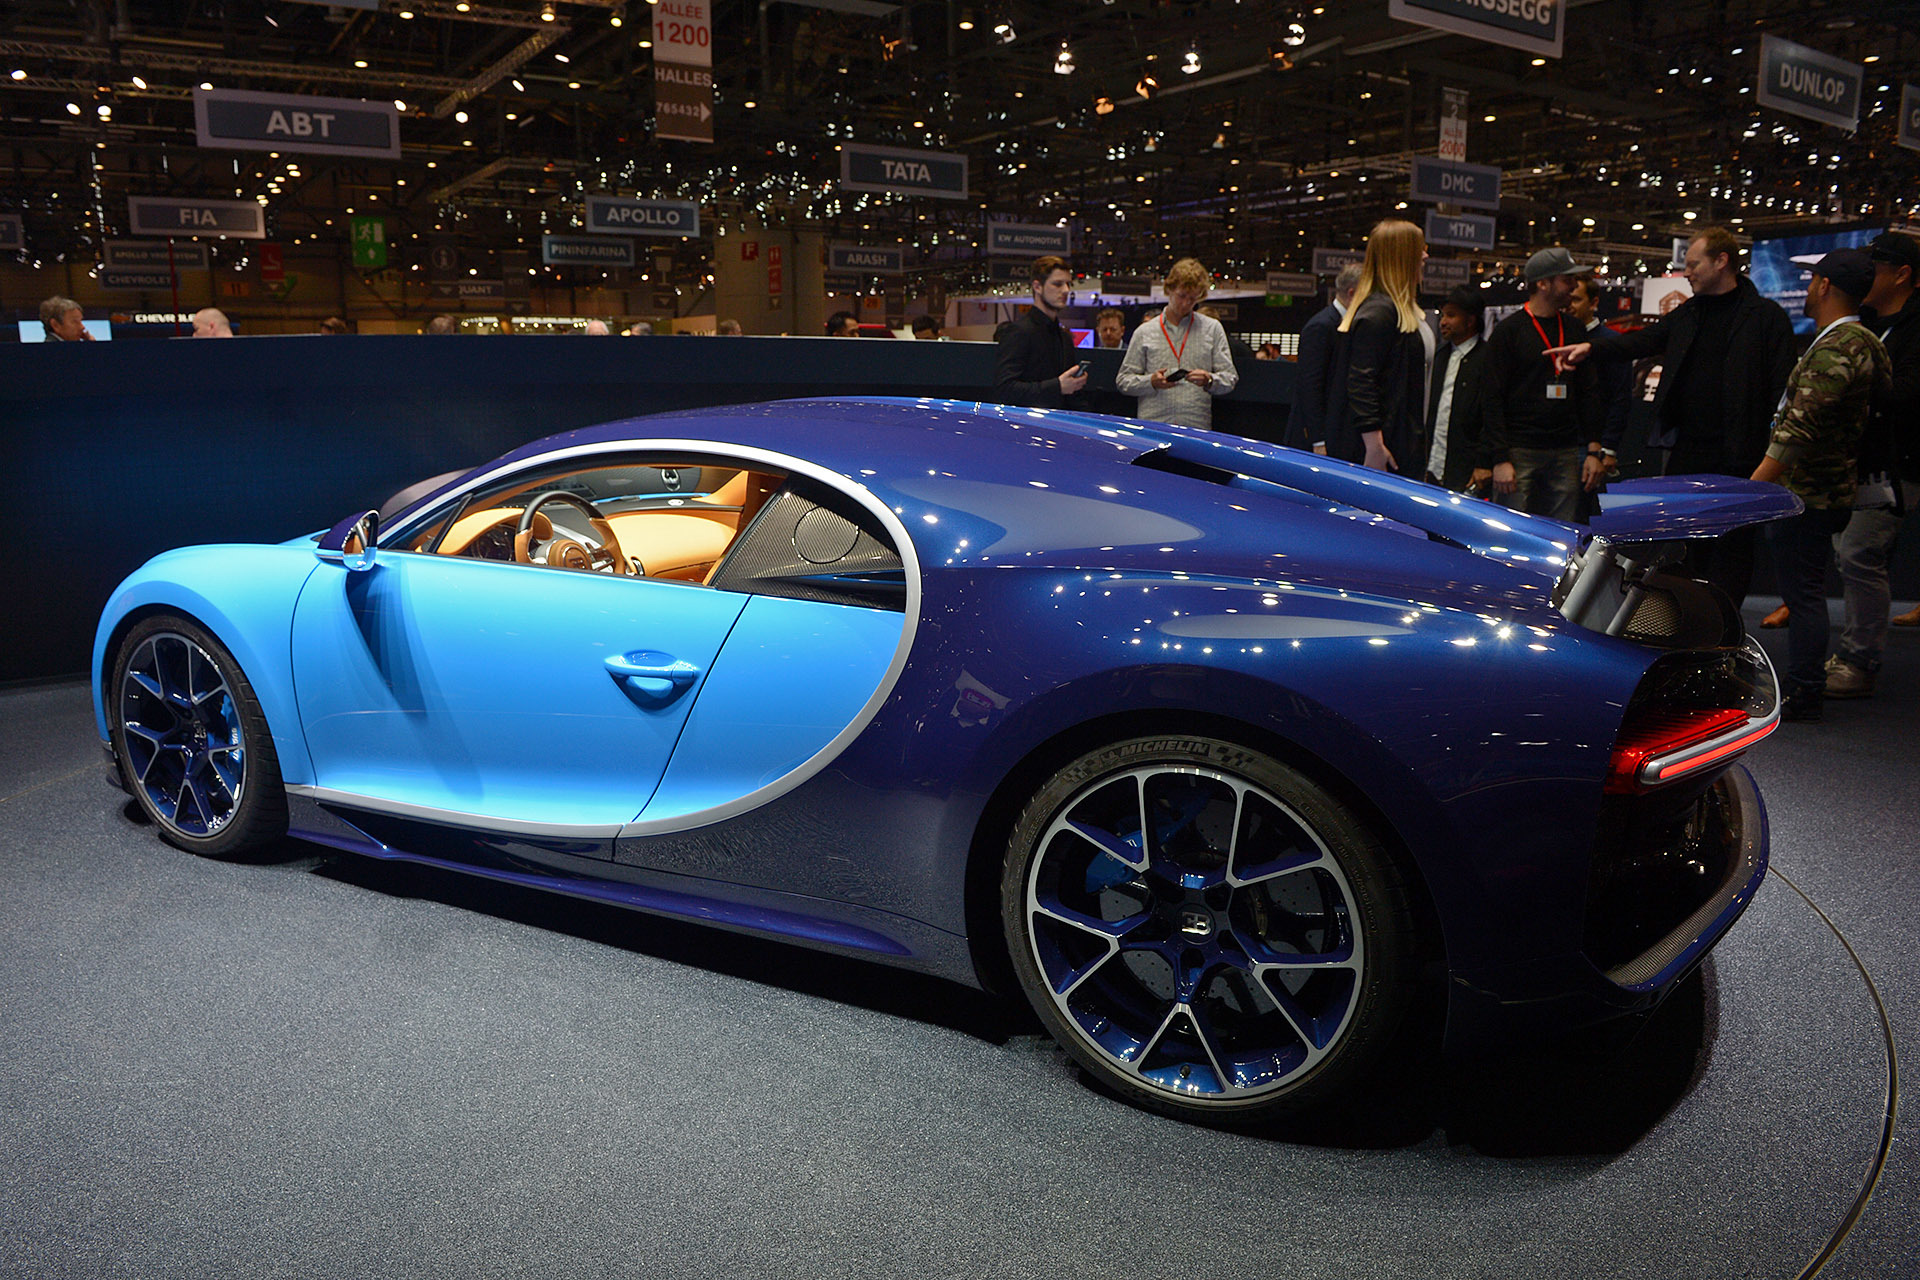 Volkswagen Won't Be Losing Money On Bugatti Chiron Like They Did On Veyron - PakWheels Blog